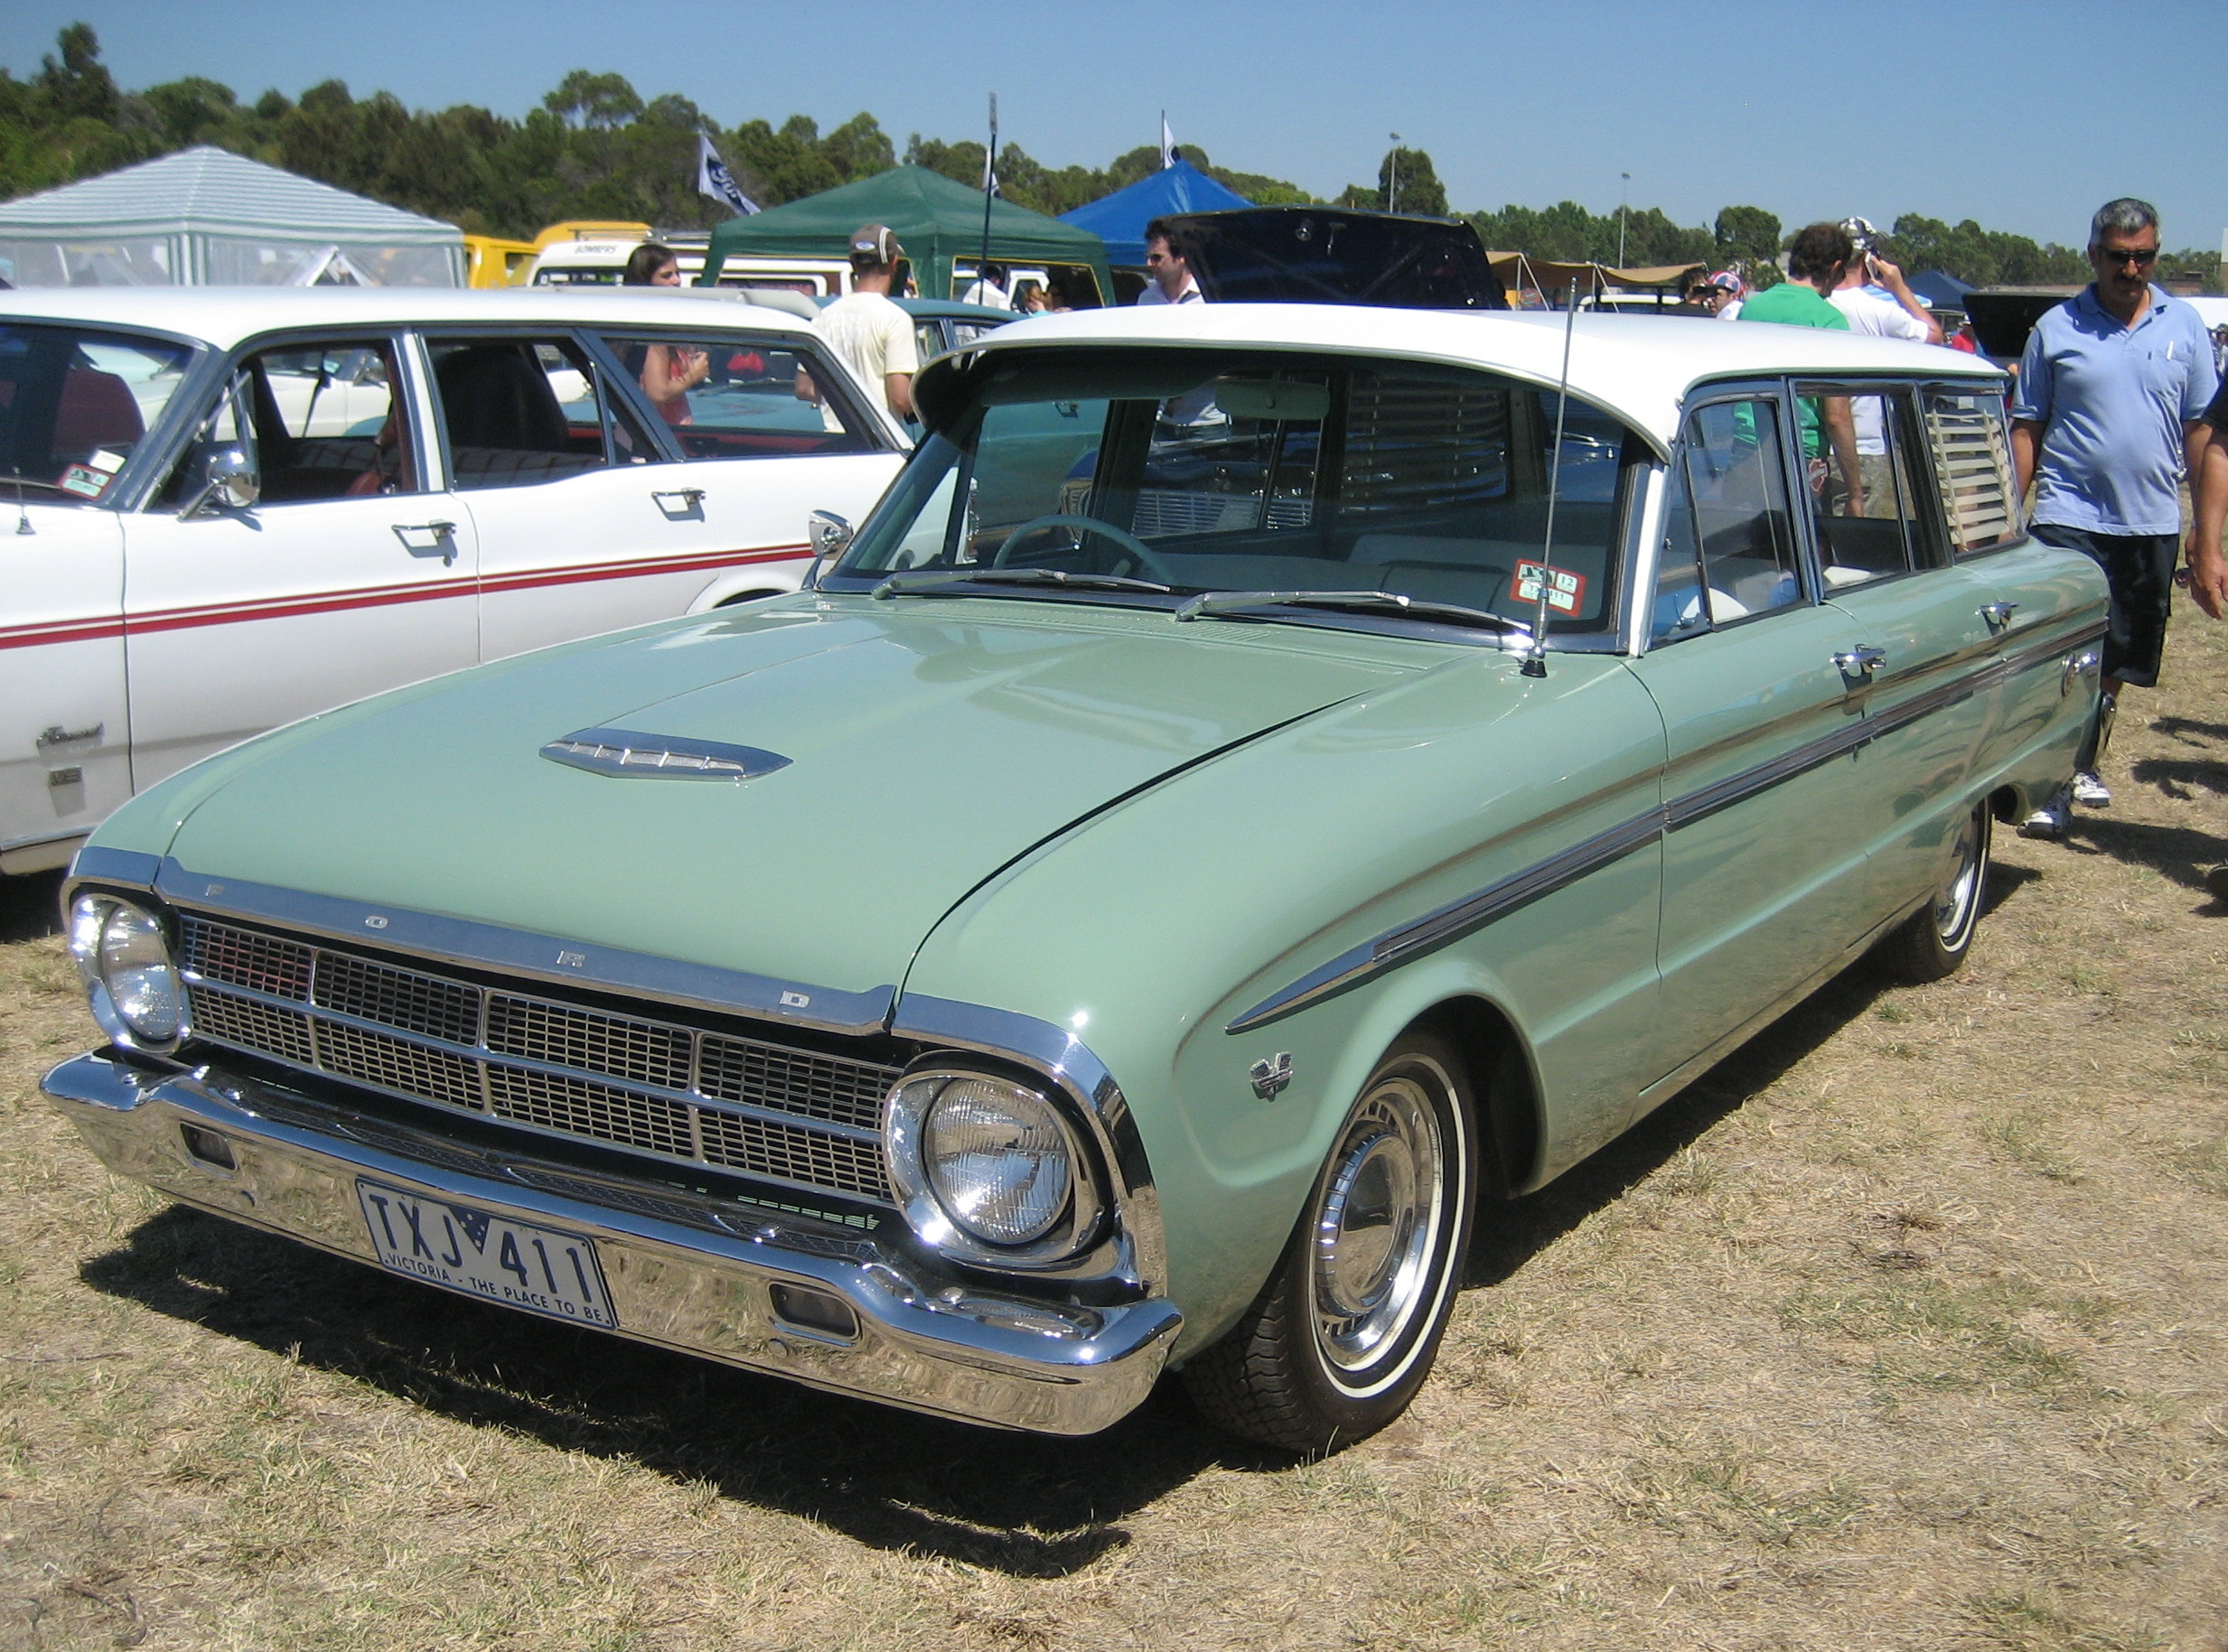 File:Ford Falcon XM Wagon jpg - Wikimedia Commons